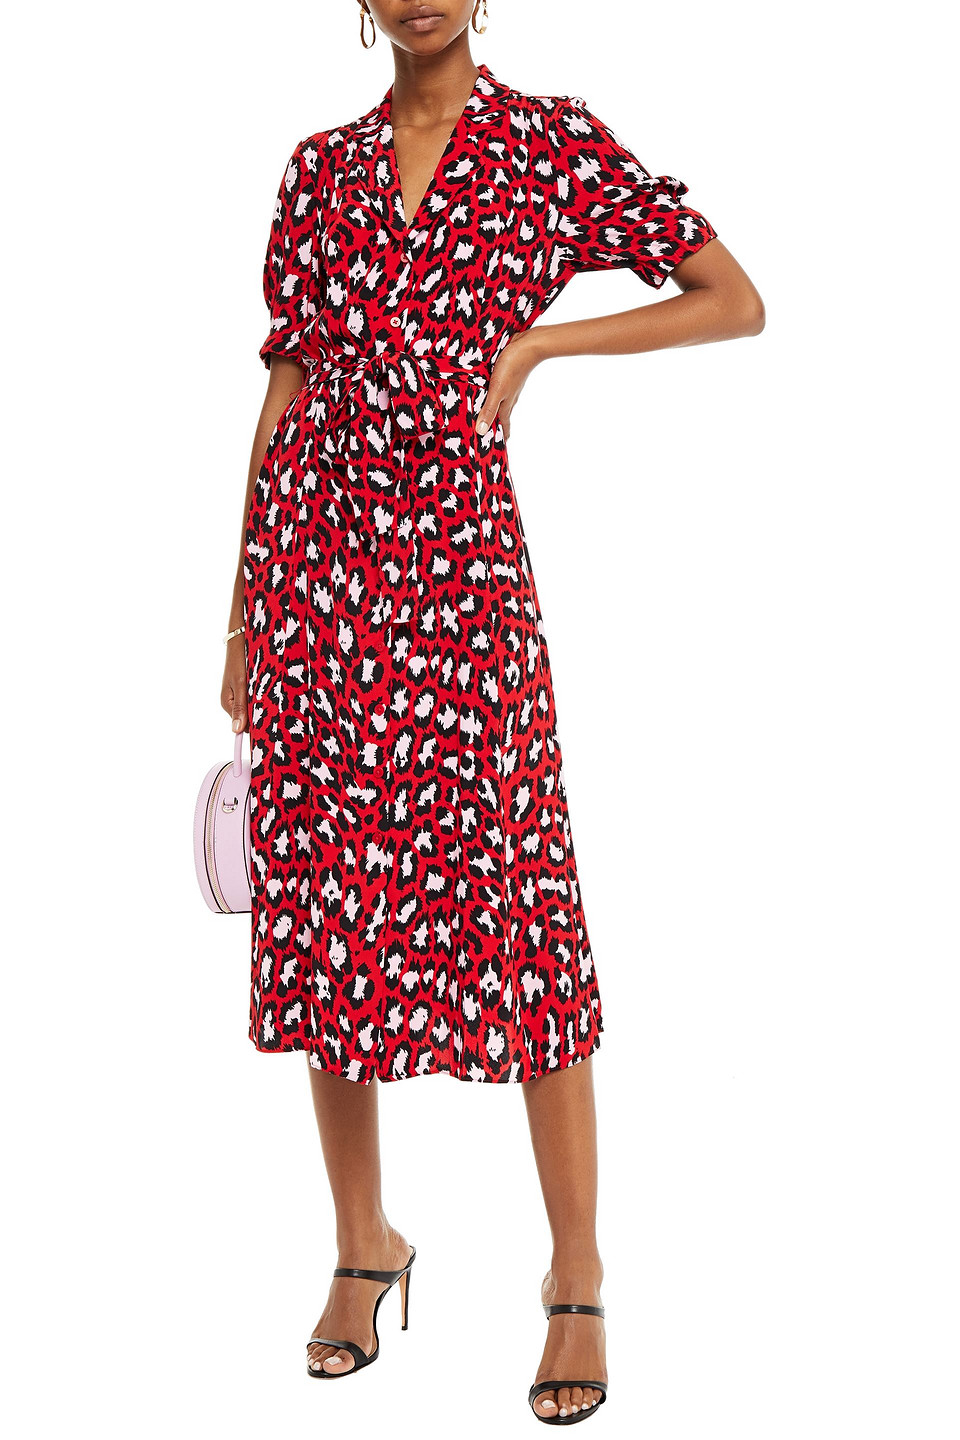 Diane Von Furstenberg   Diane Von Furstenberg Woman Lily Belted Floral-print Silk Crepe De Chine Midi Dress Red   Clouty